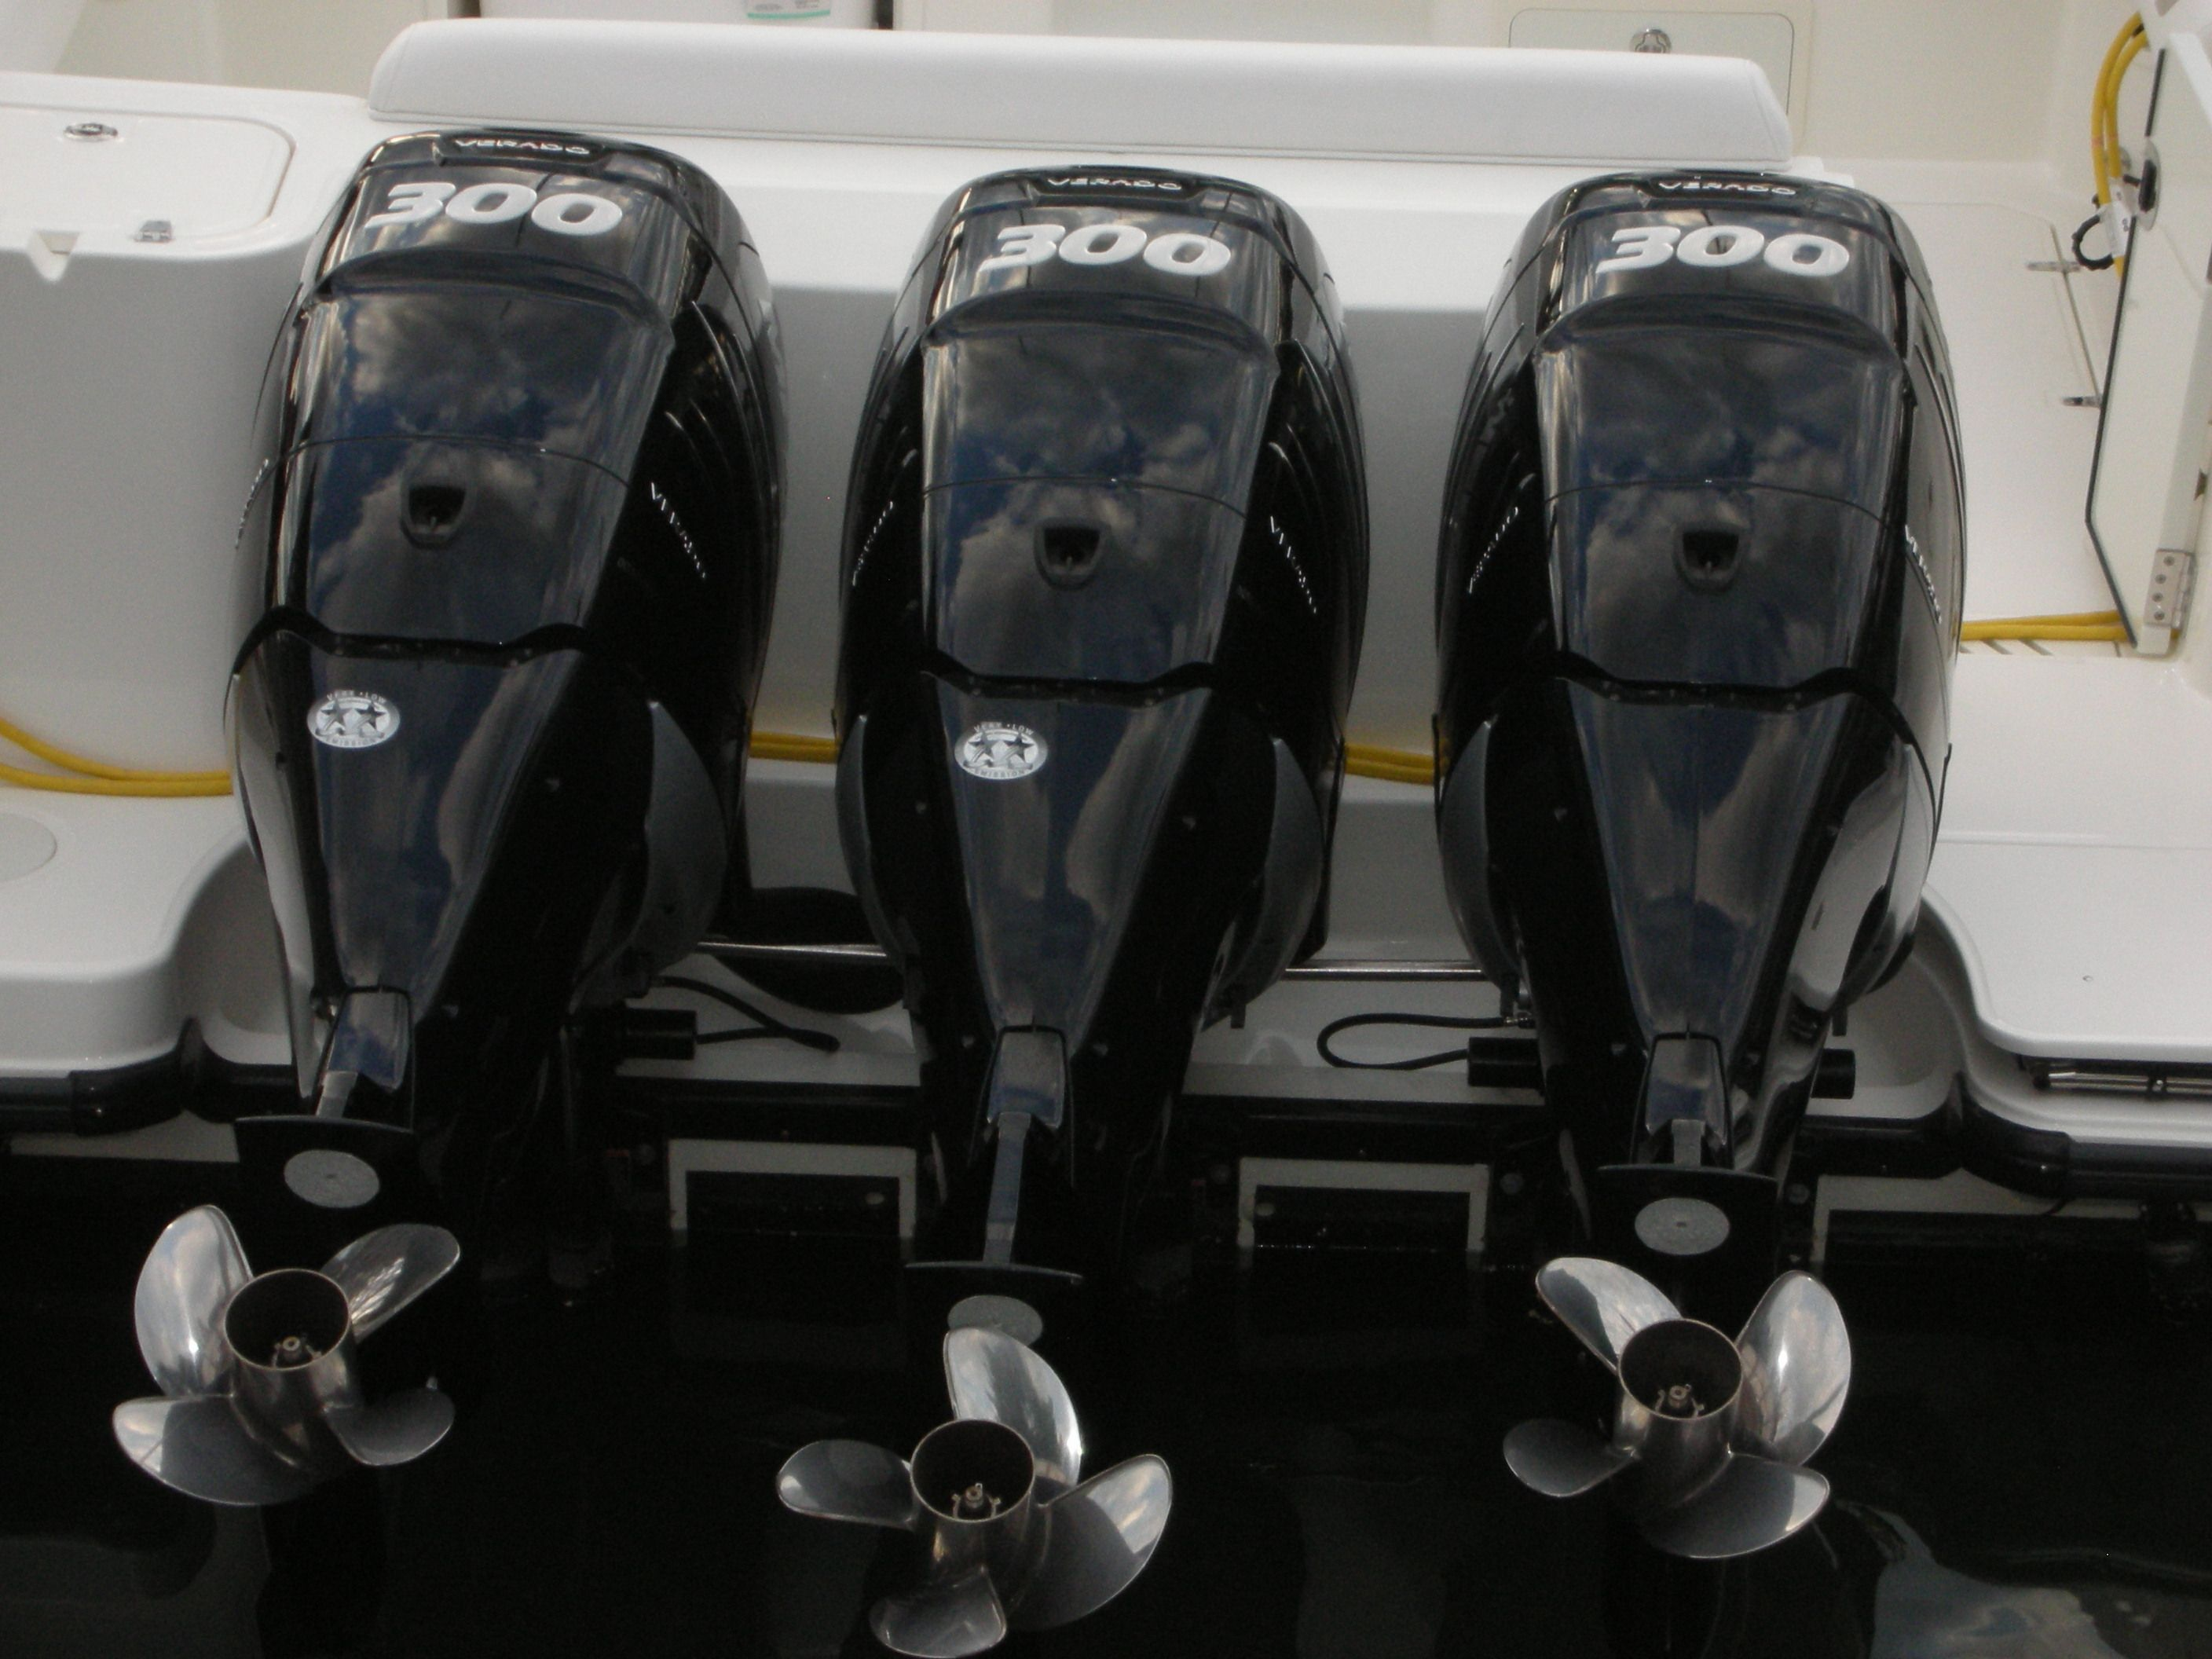 Not one, not two, but three Mercury outboard motors - 900 HP